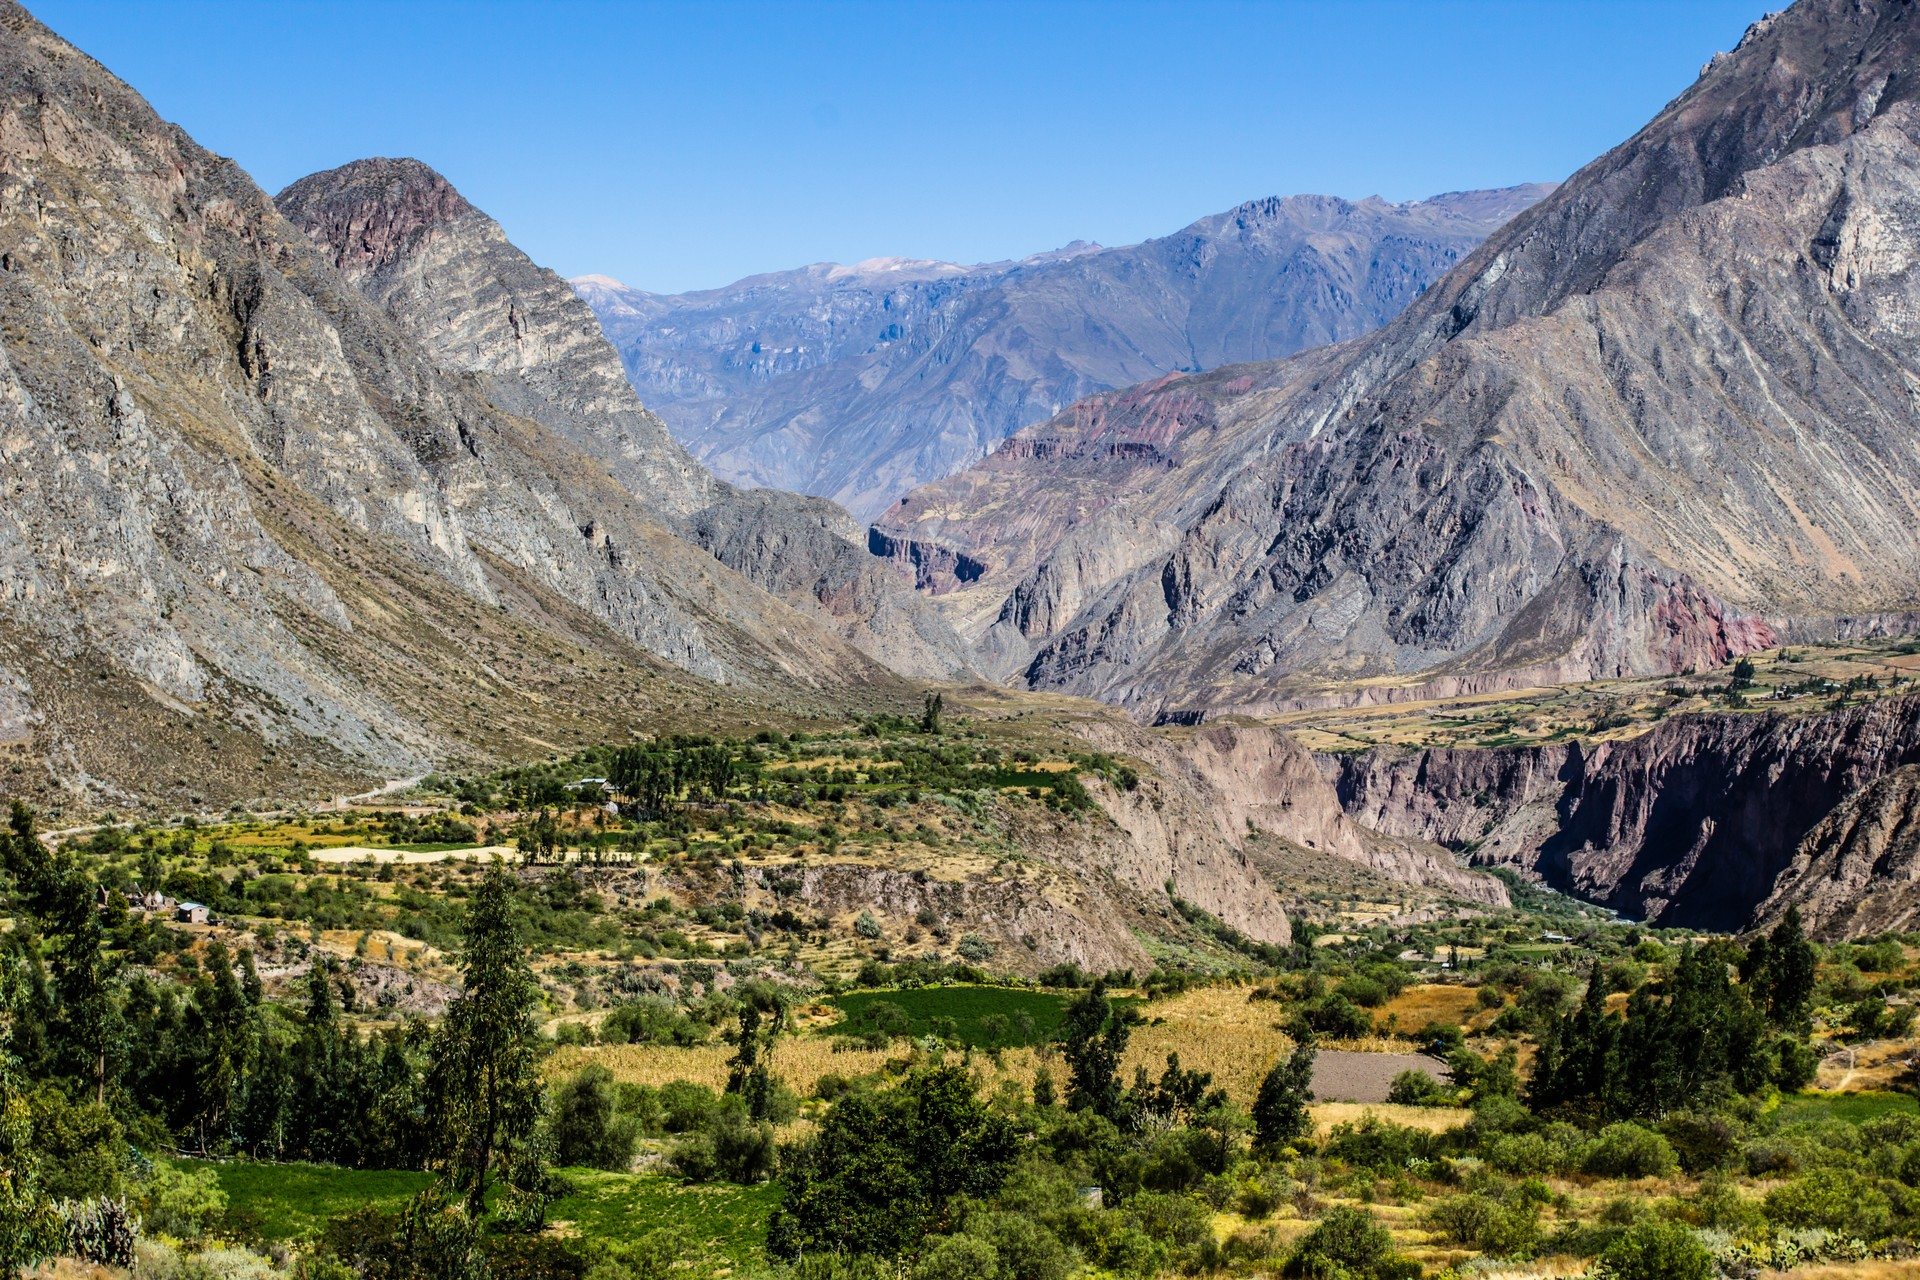 The Cotahuasi Canyon in Peru is the world's deepest canyon